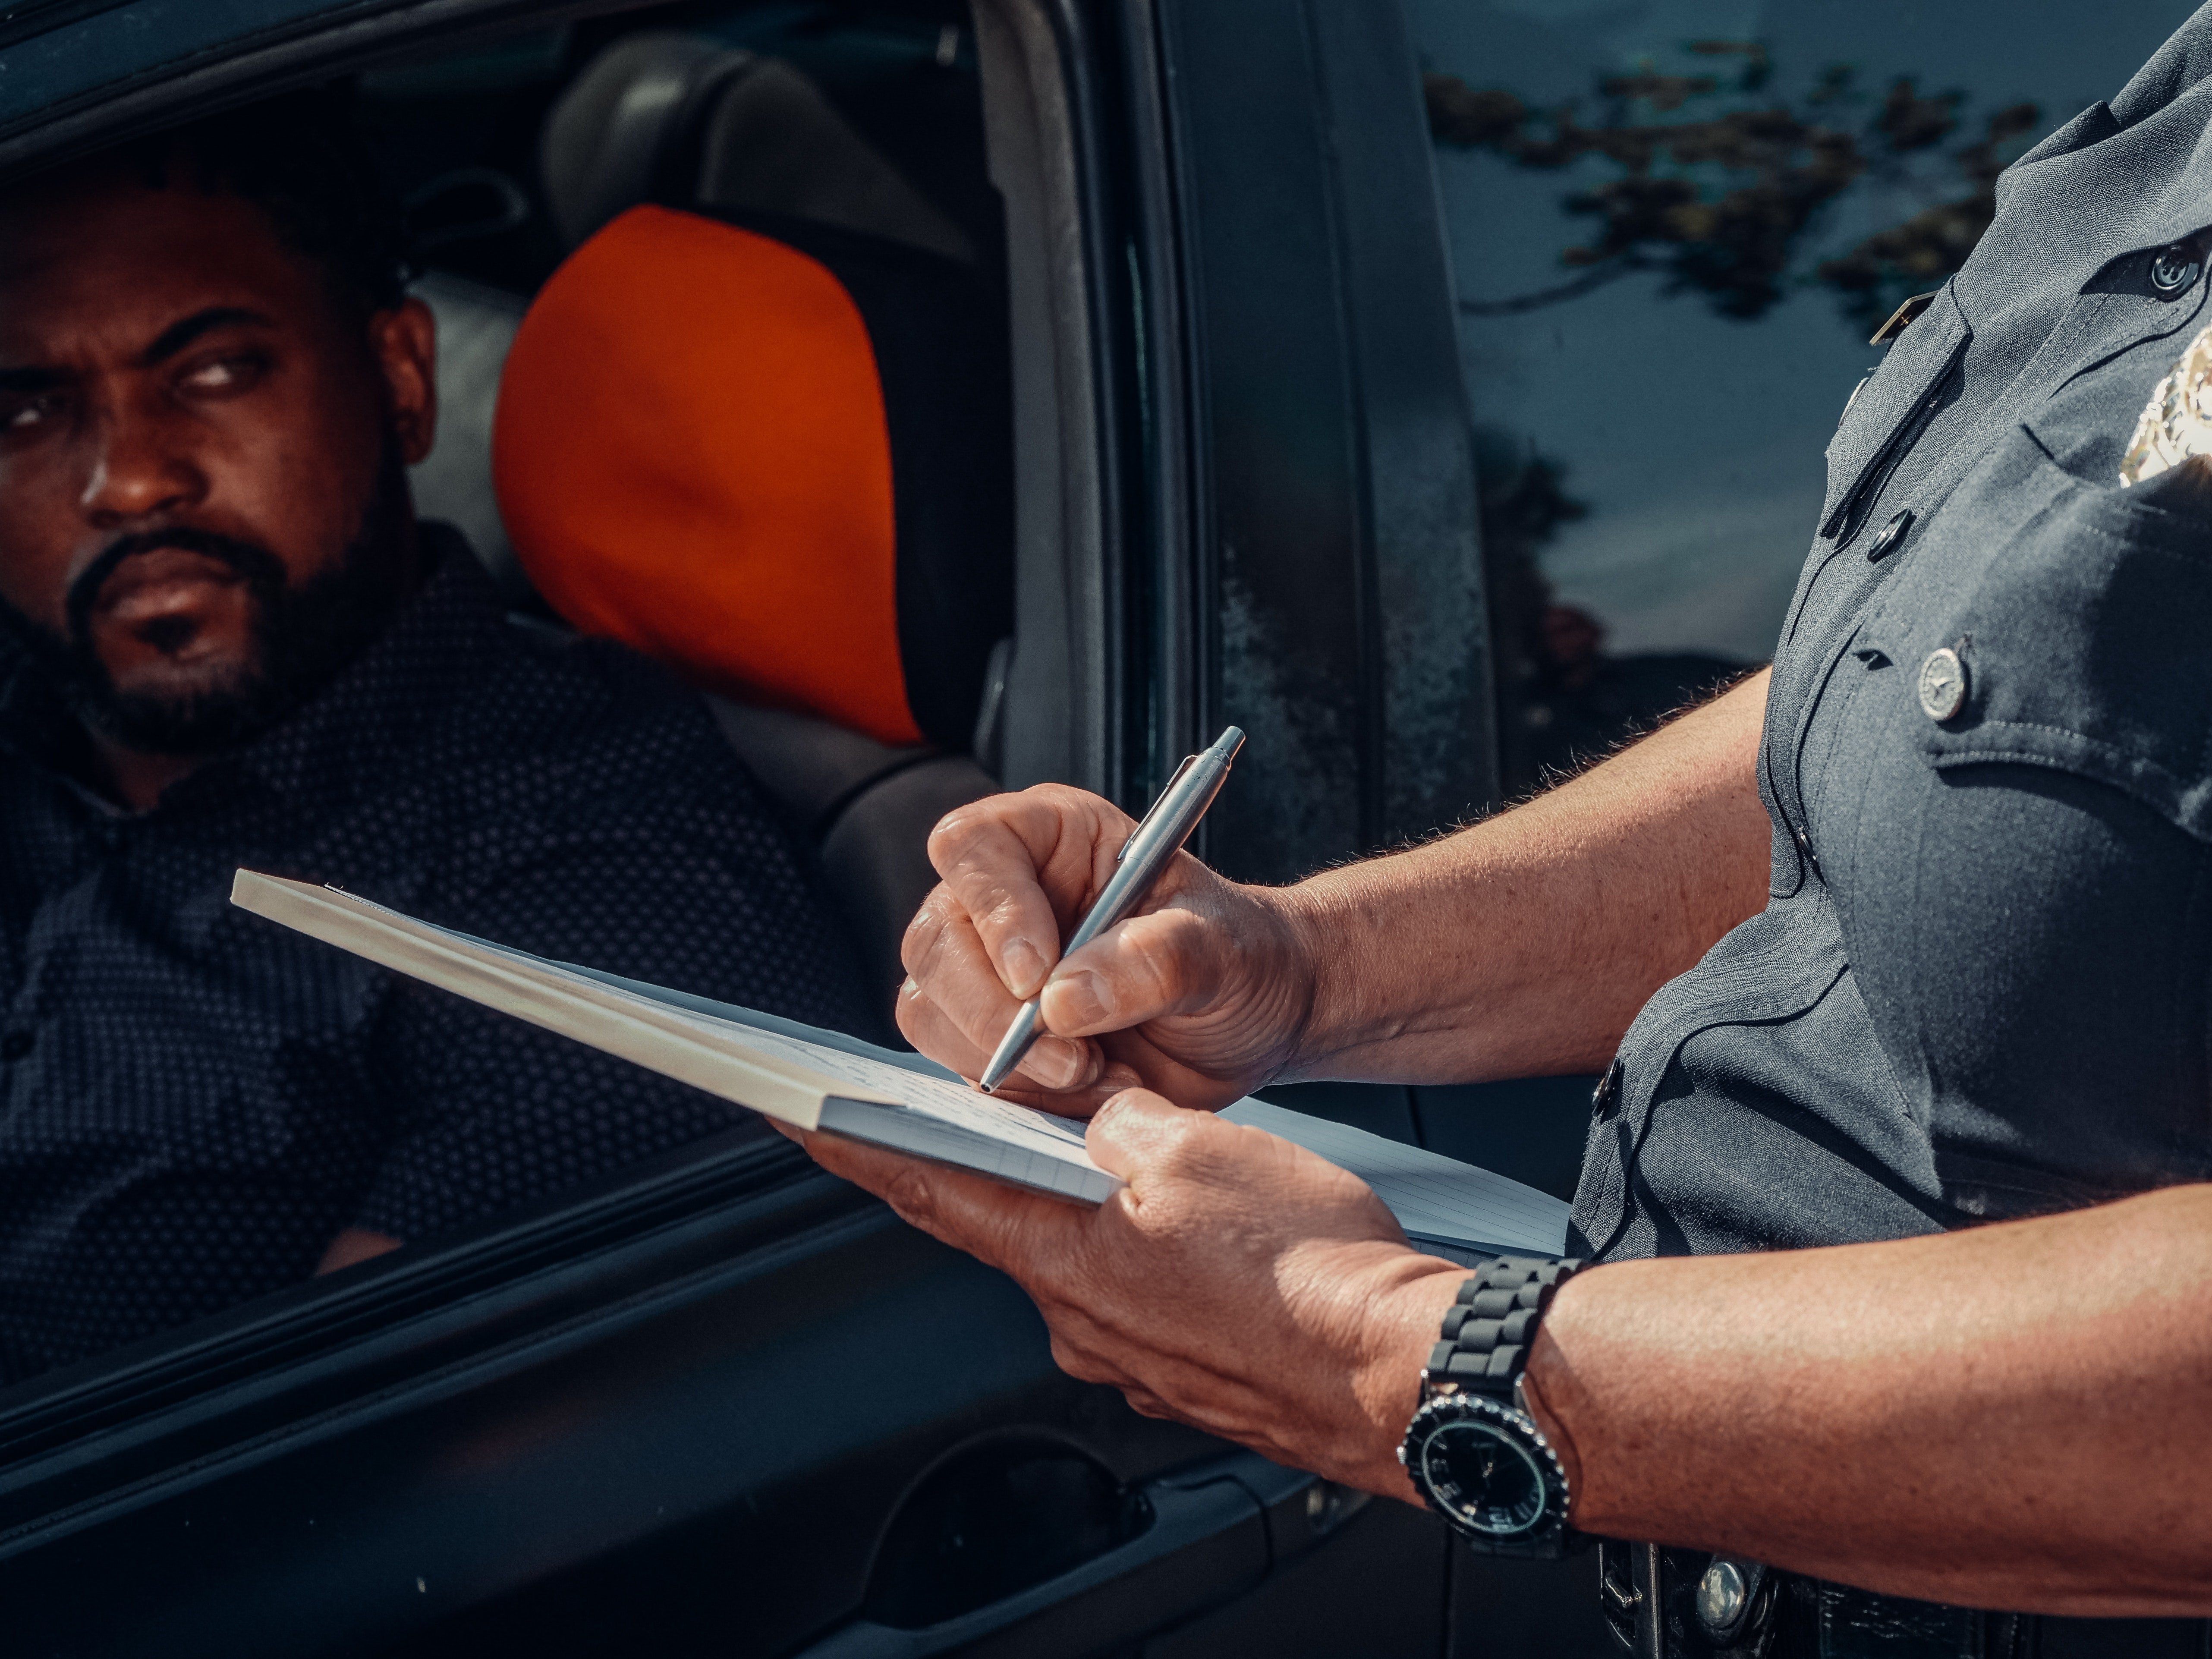 The police officer asked the man to show him the car's papers. | Photo: Pexels/Kindel Media